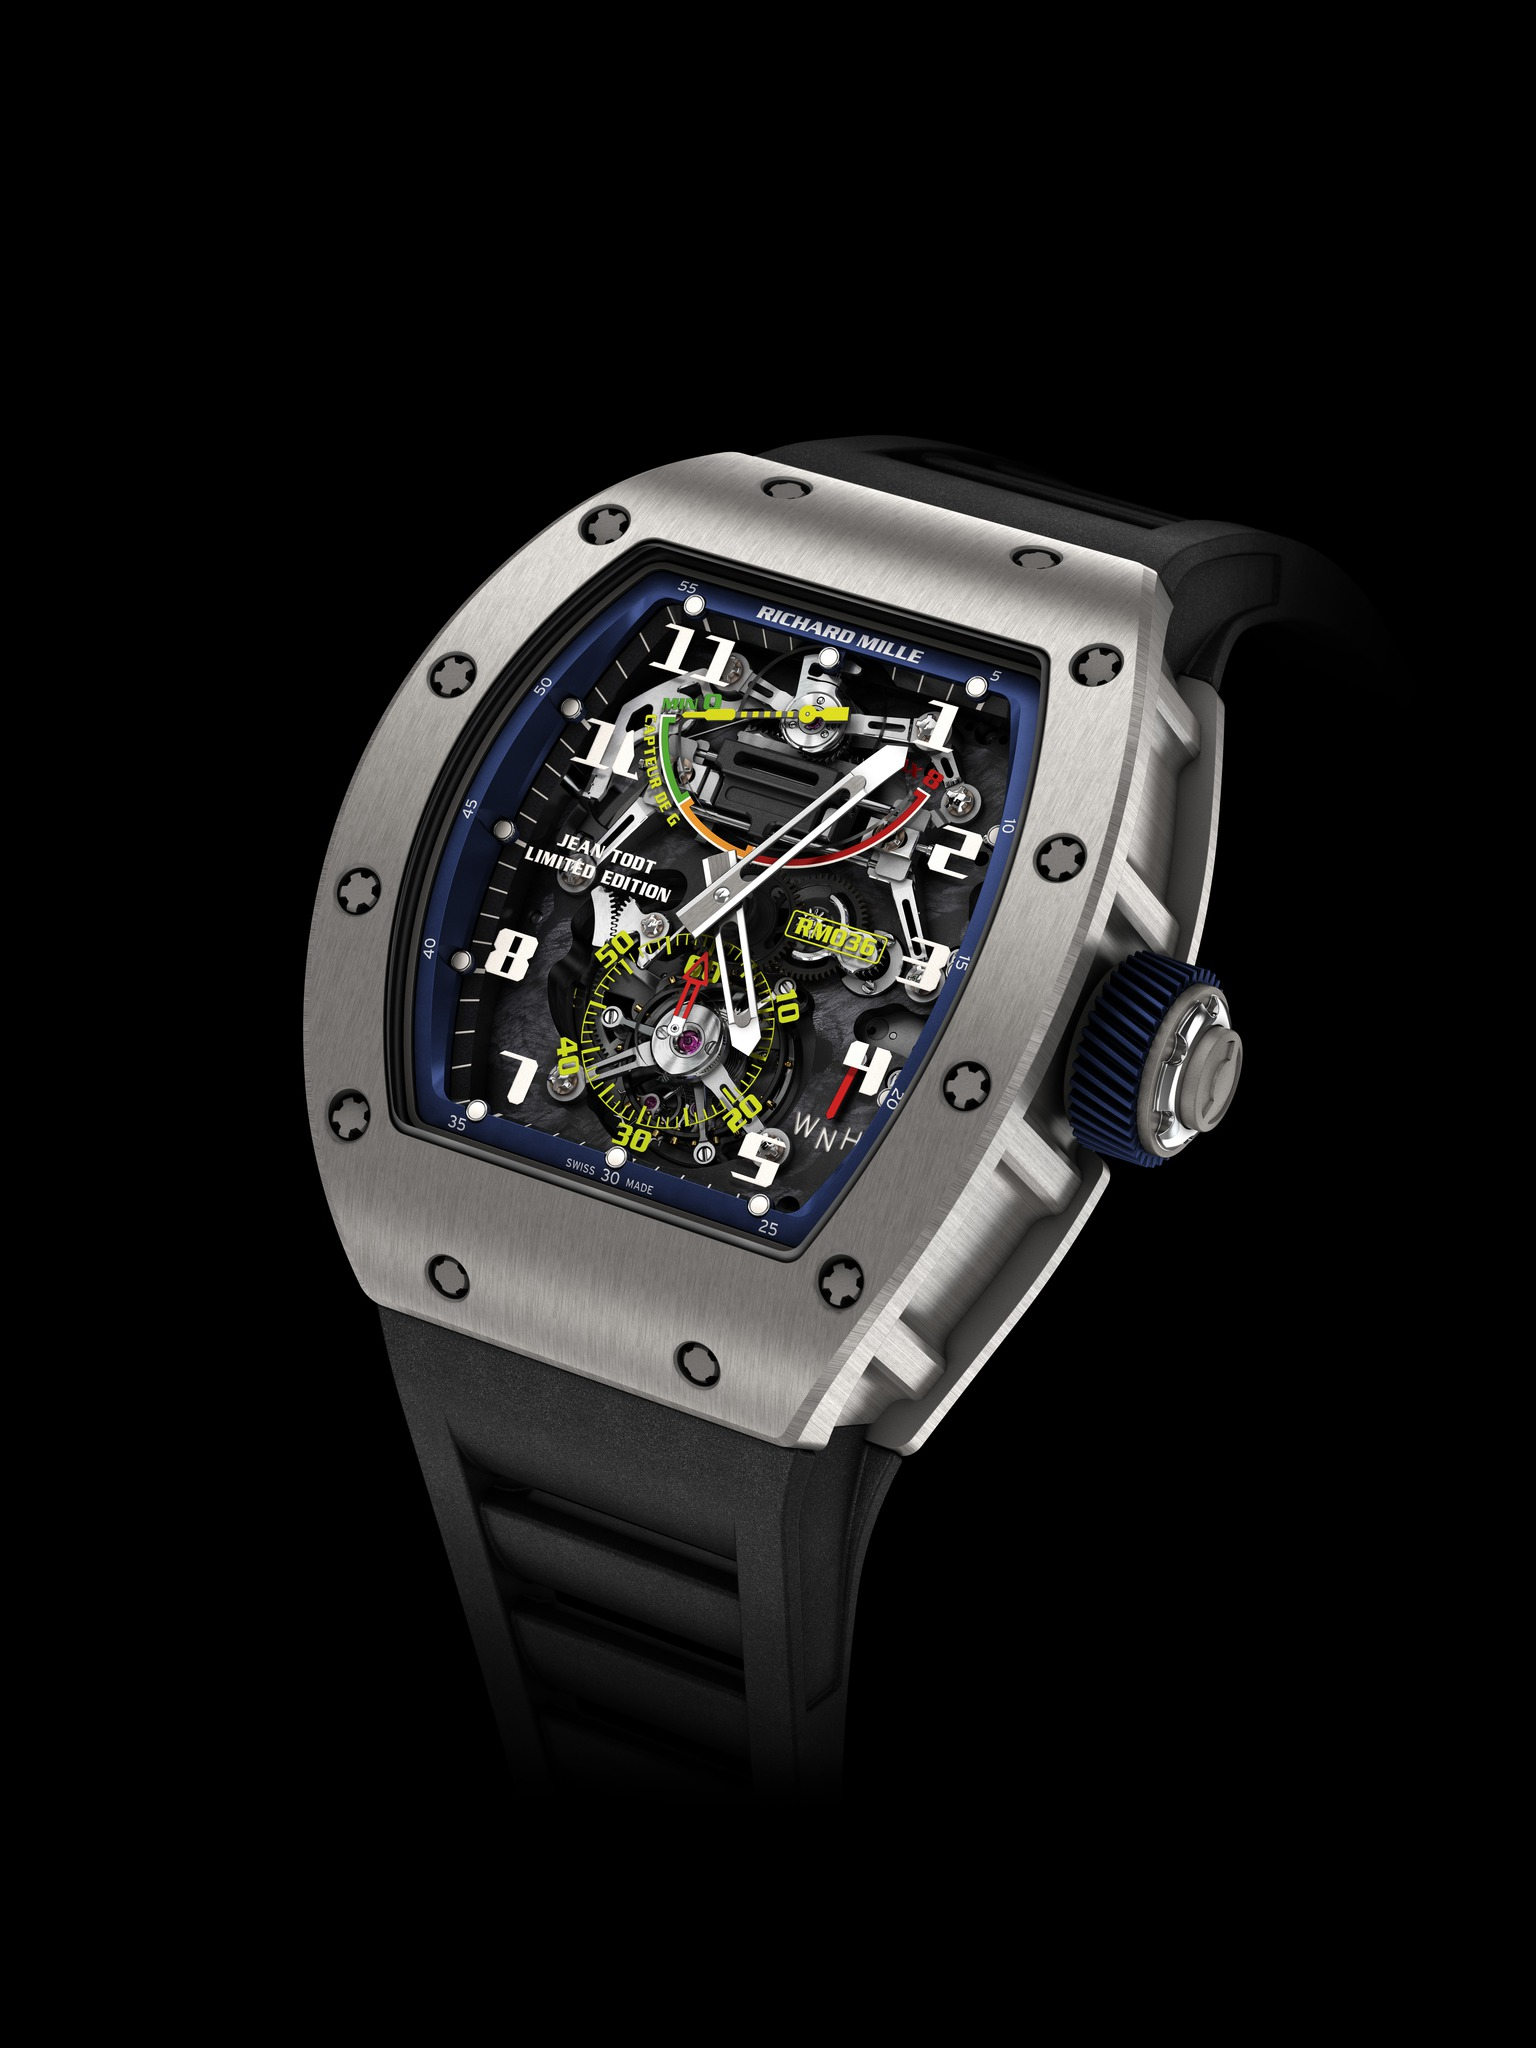 Replica Richard Mille RM 036 G-Sensor System Tourbillon Jean Todt Titanium Watch